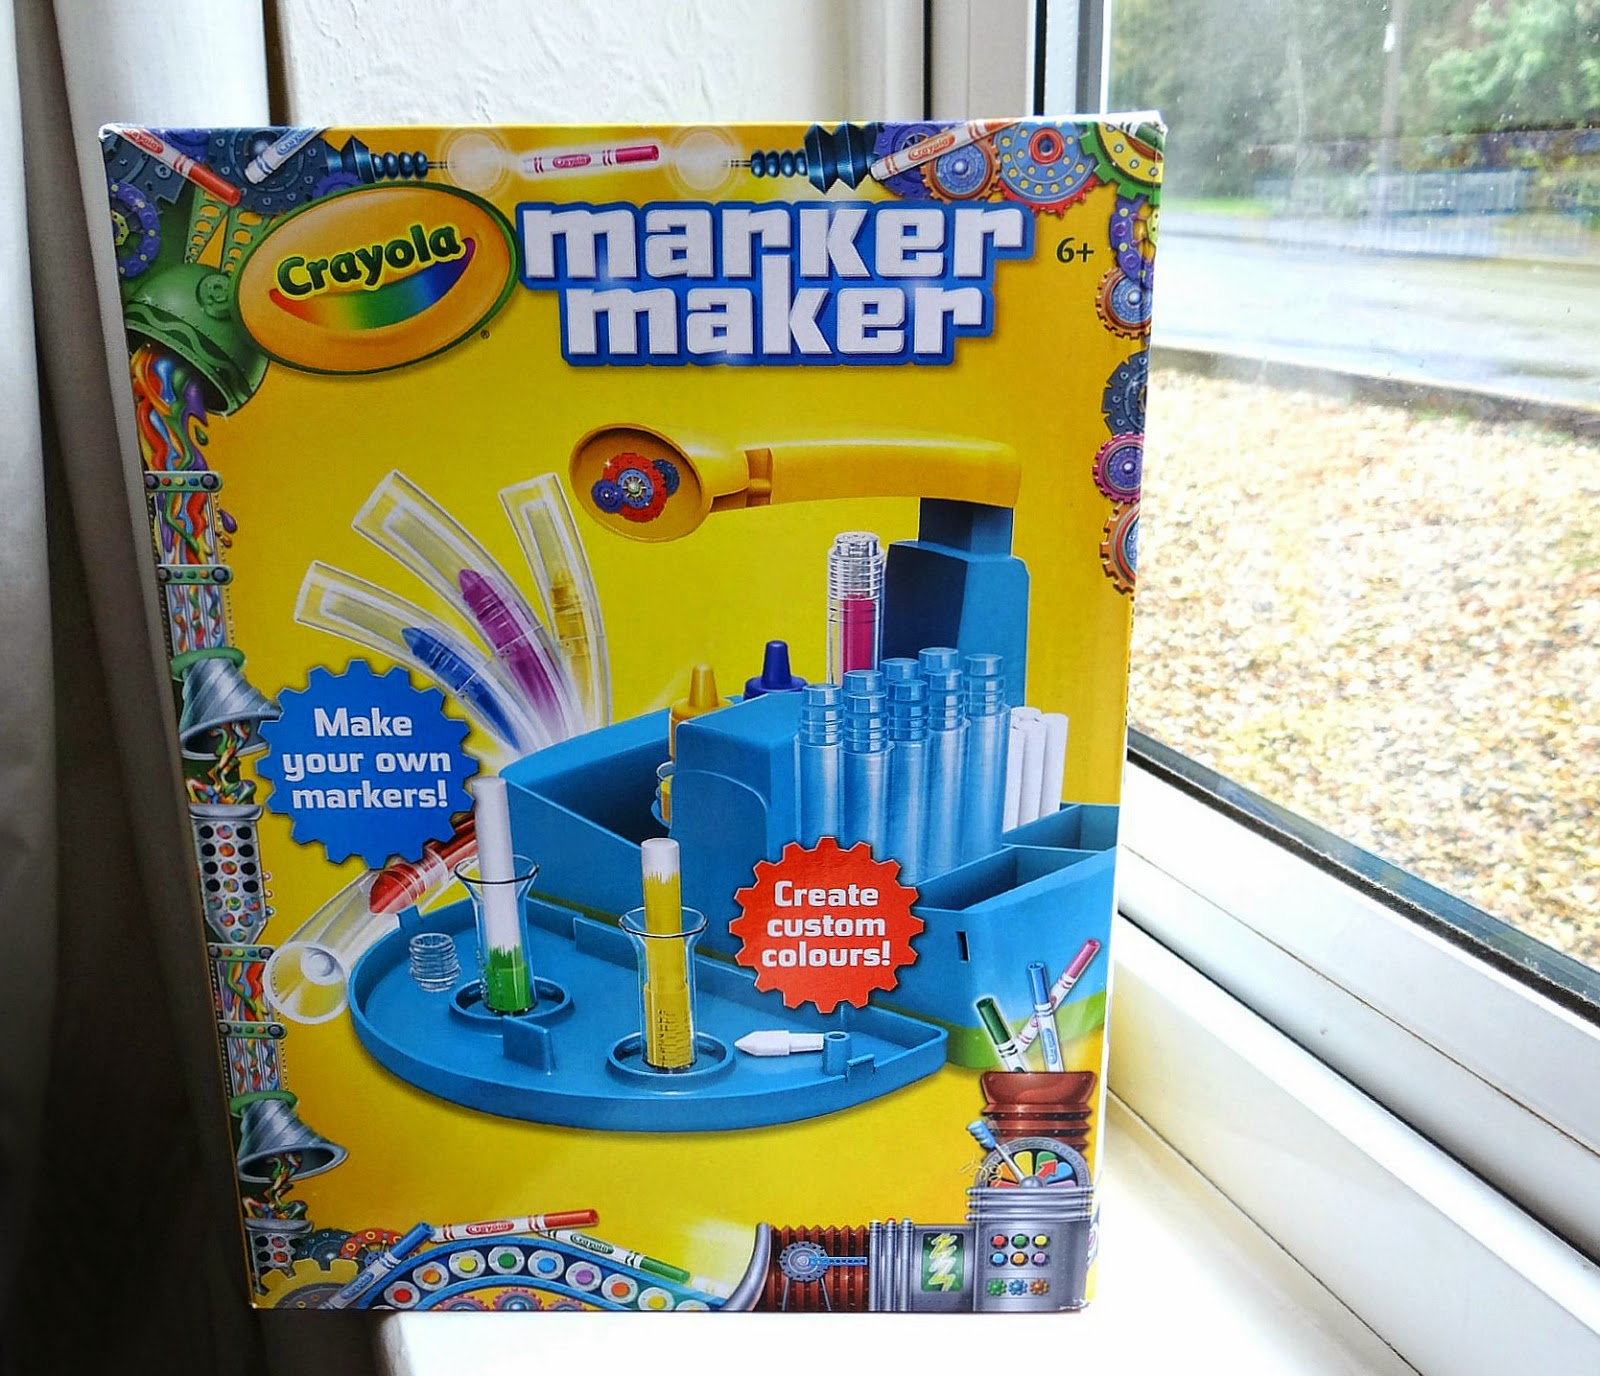 Crayola UK Blogger, Crayola Marker Maker, Christmas Gifts Ideas